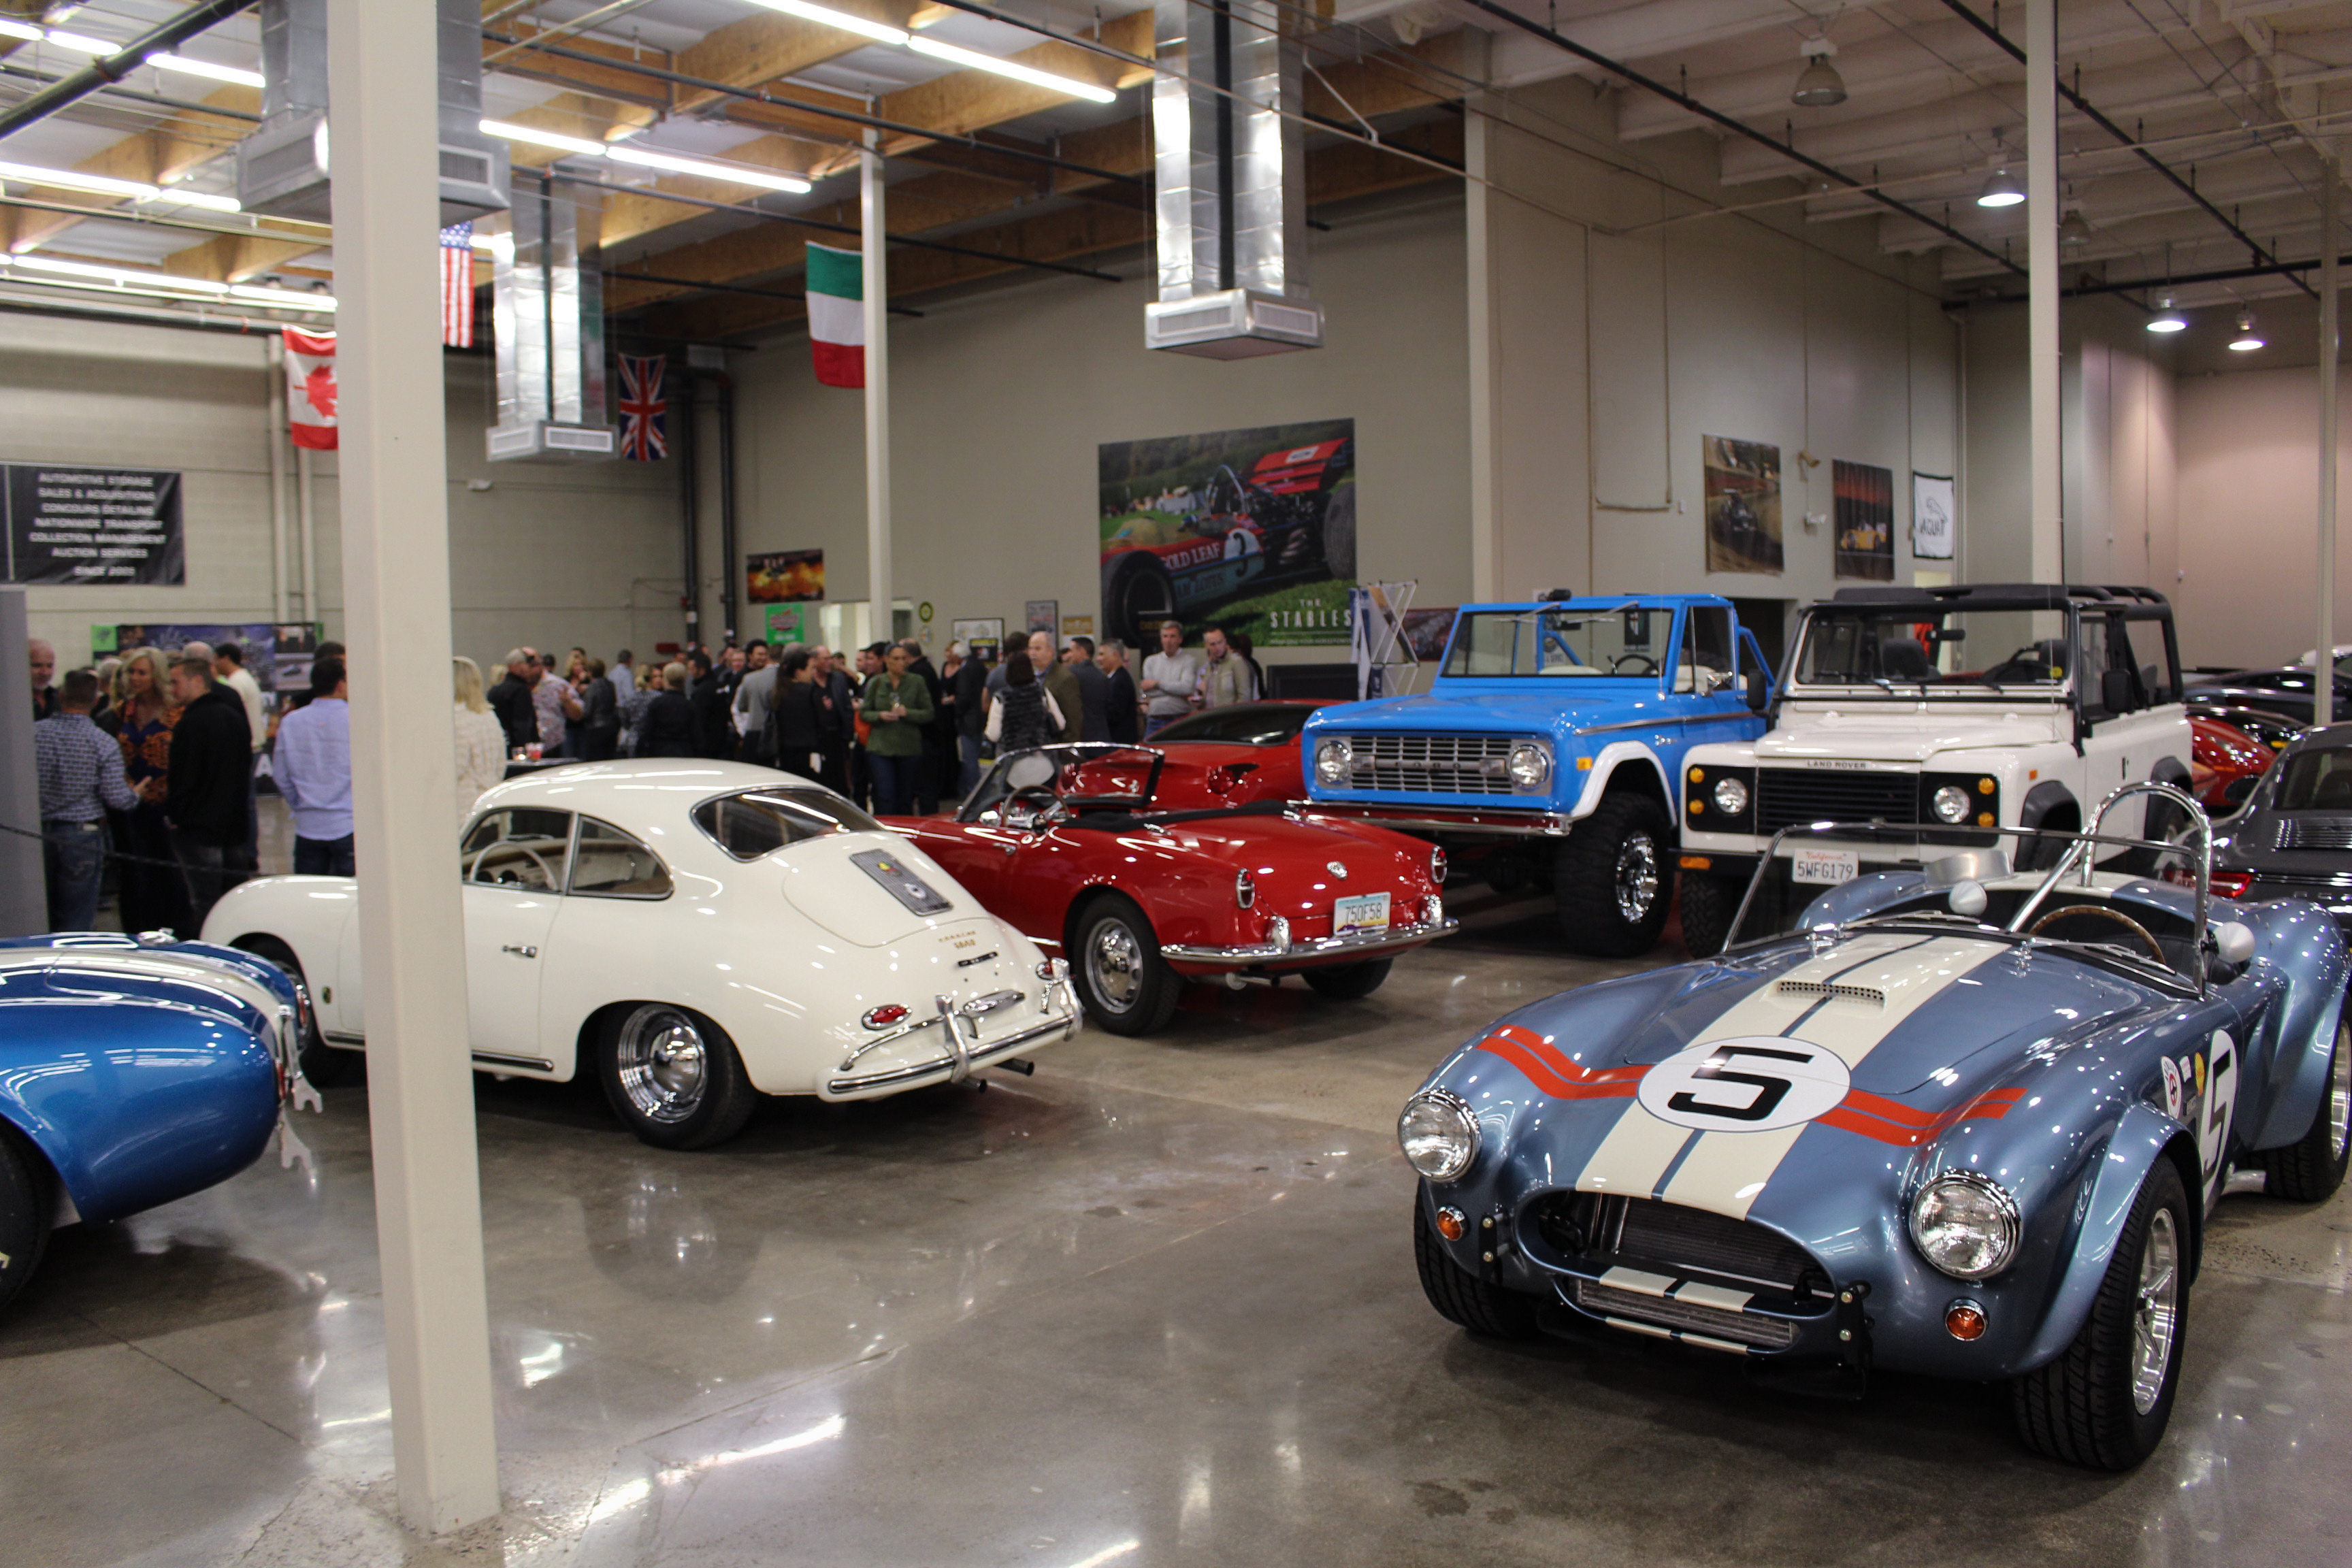 200+ attended the first annual Speed Soiree